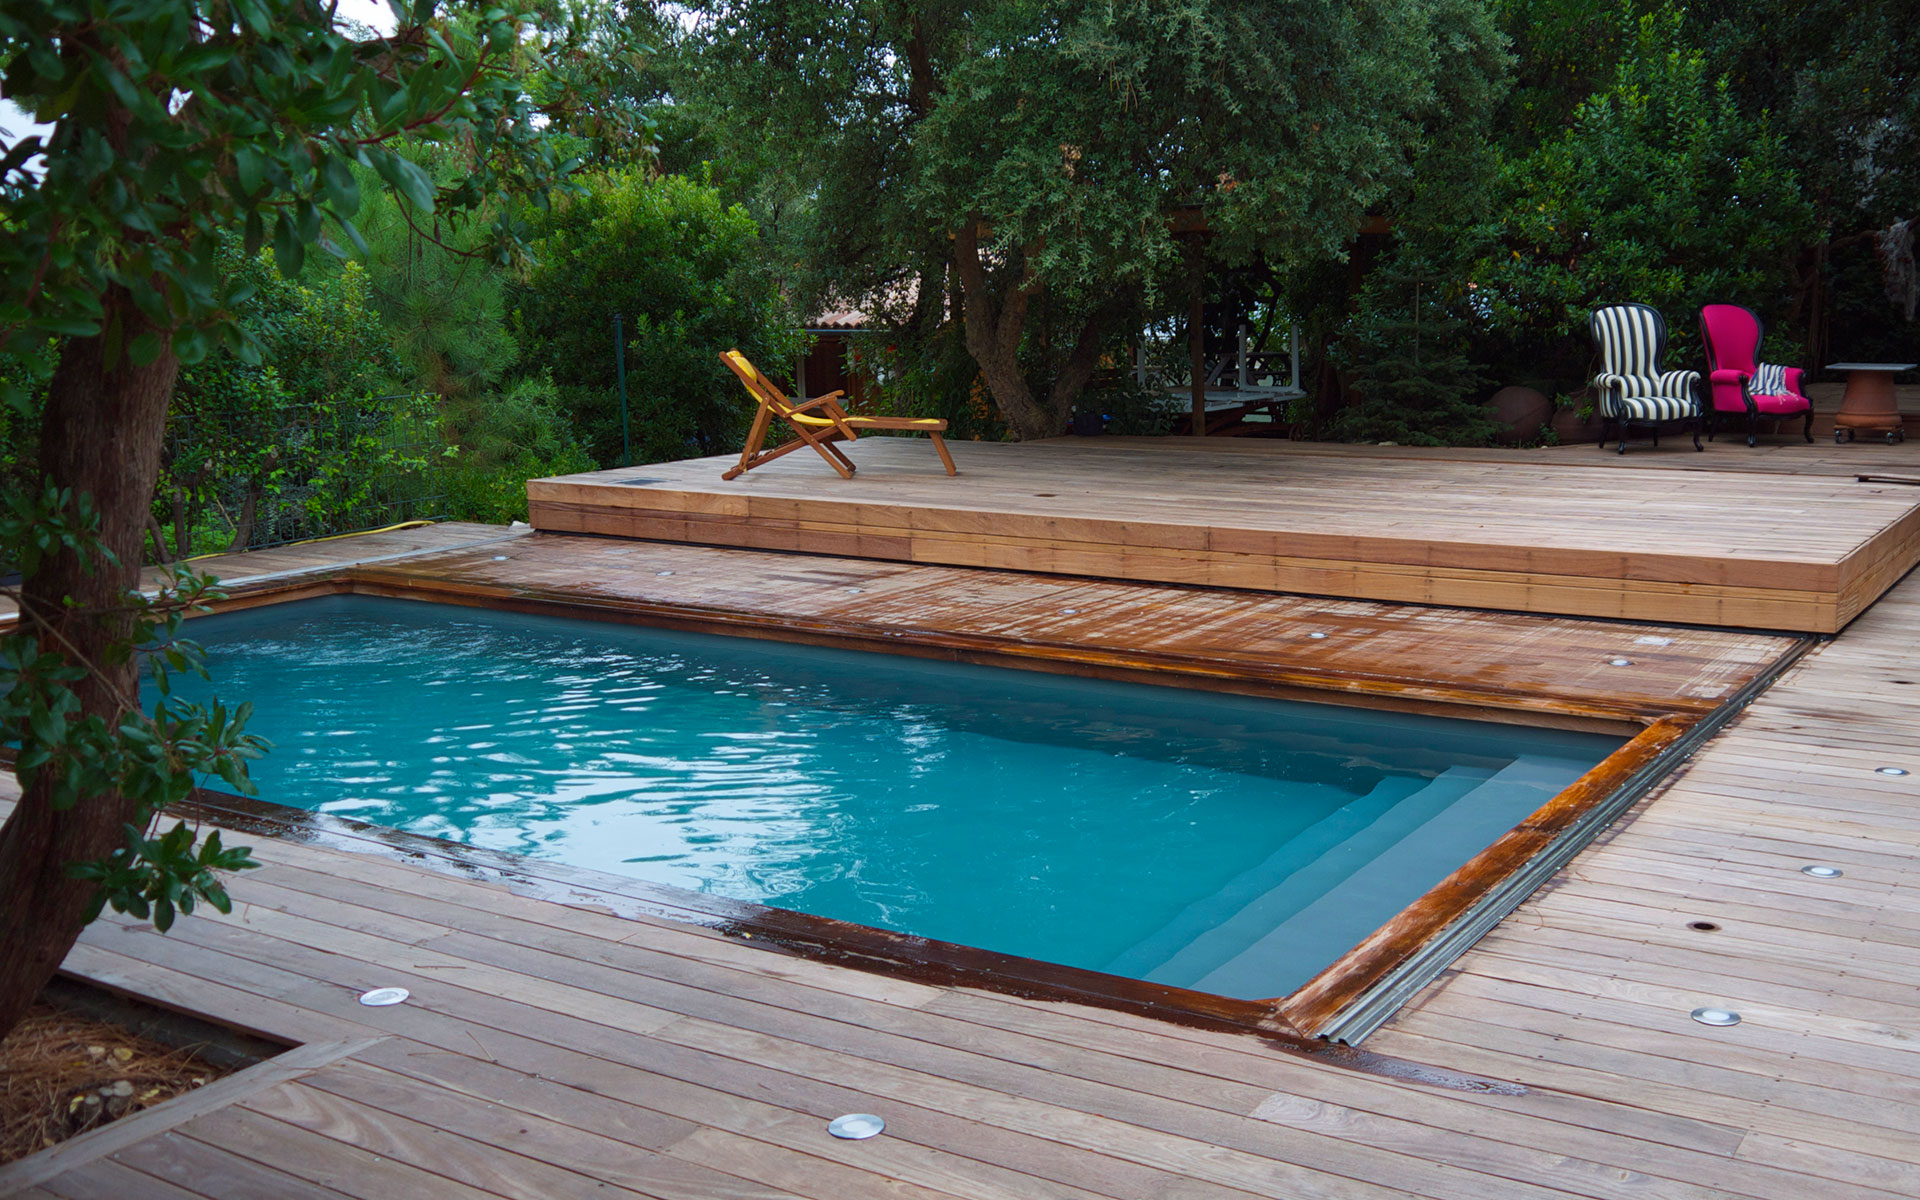 Terrasse mobile pour piscine - Hidden pool - Fond mobile pour ...